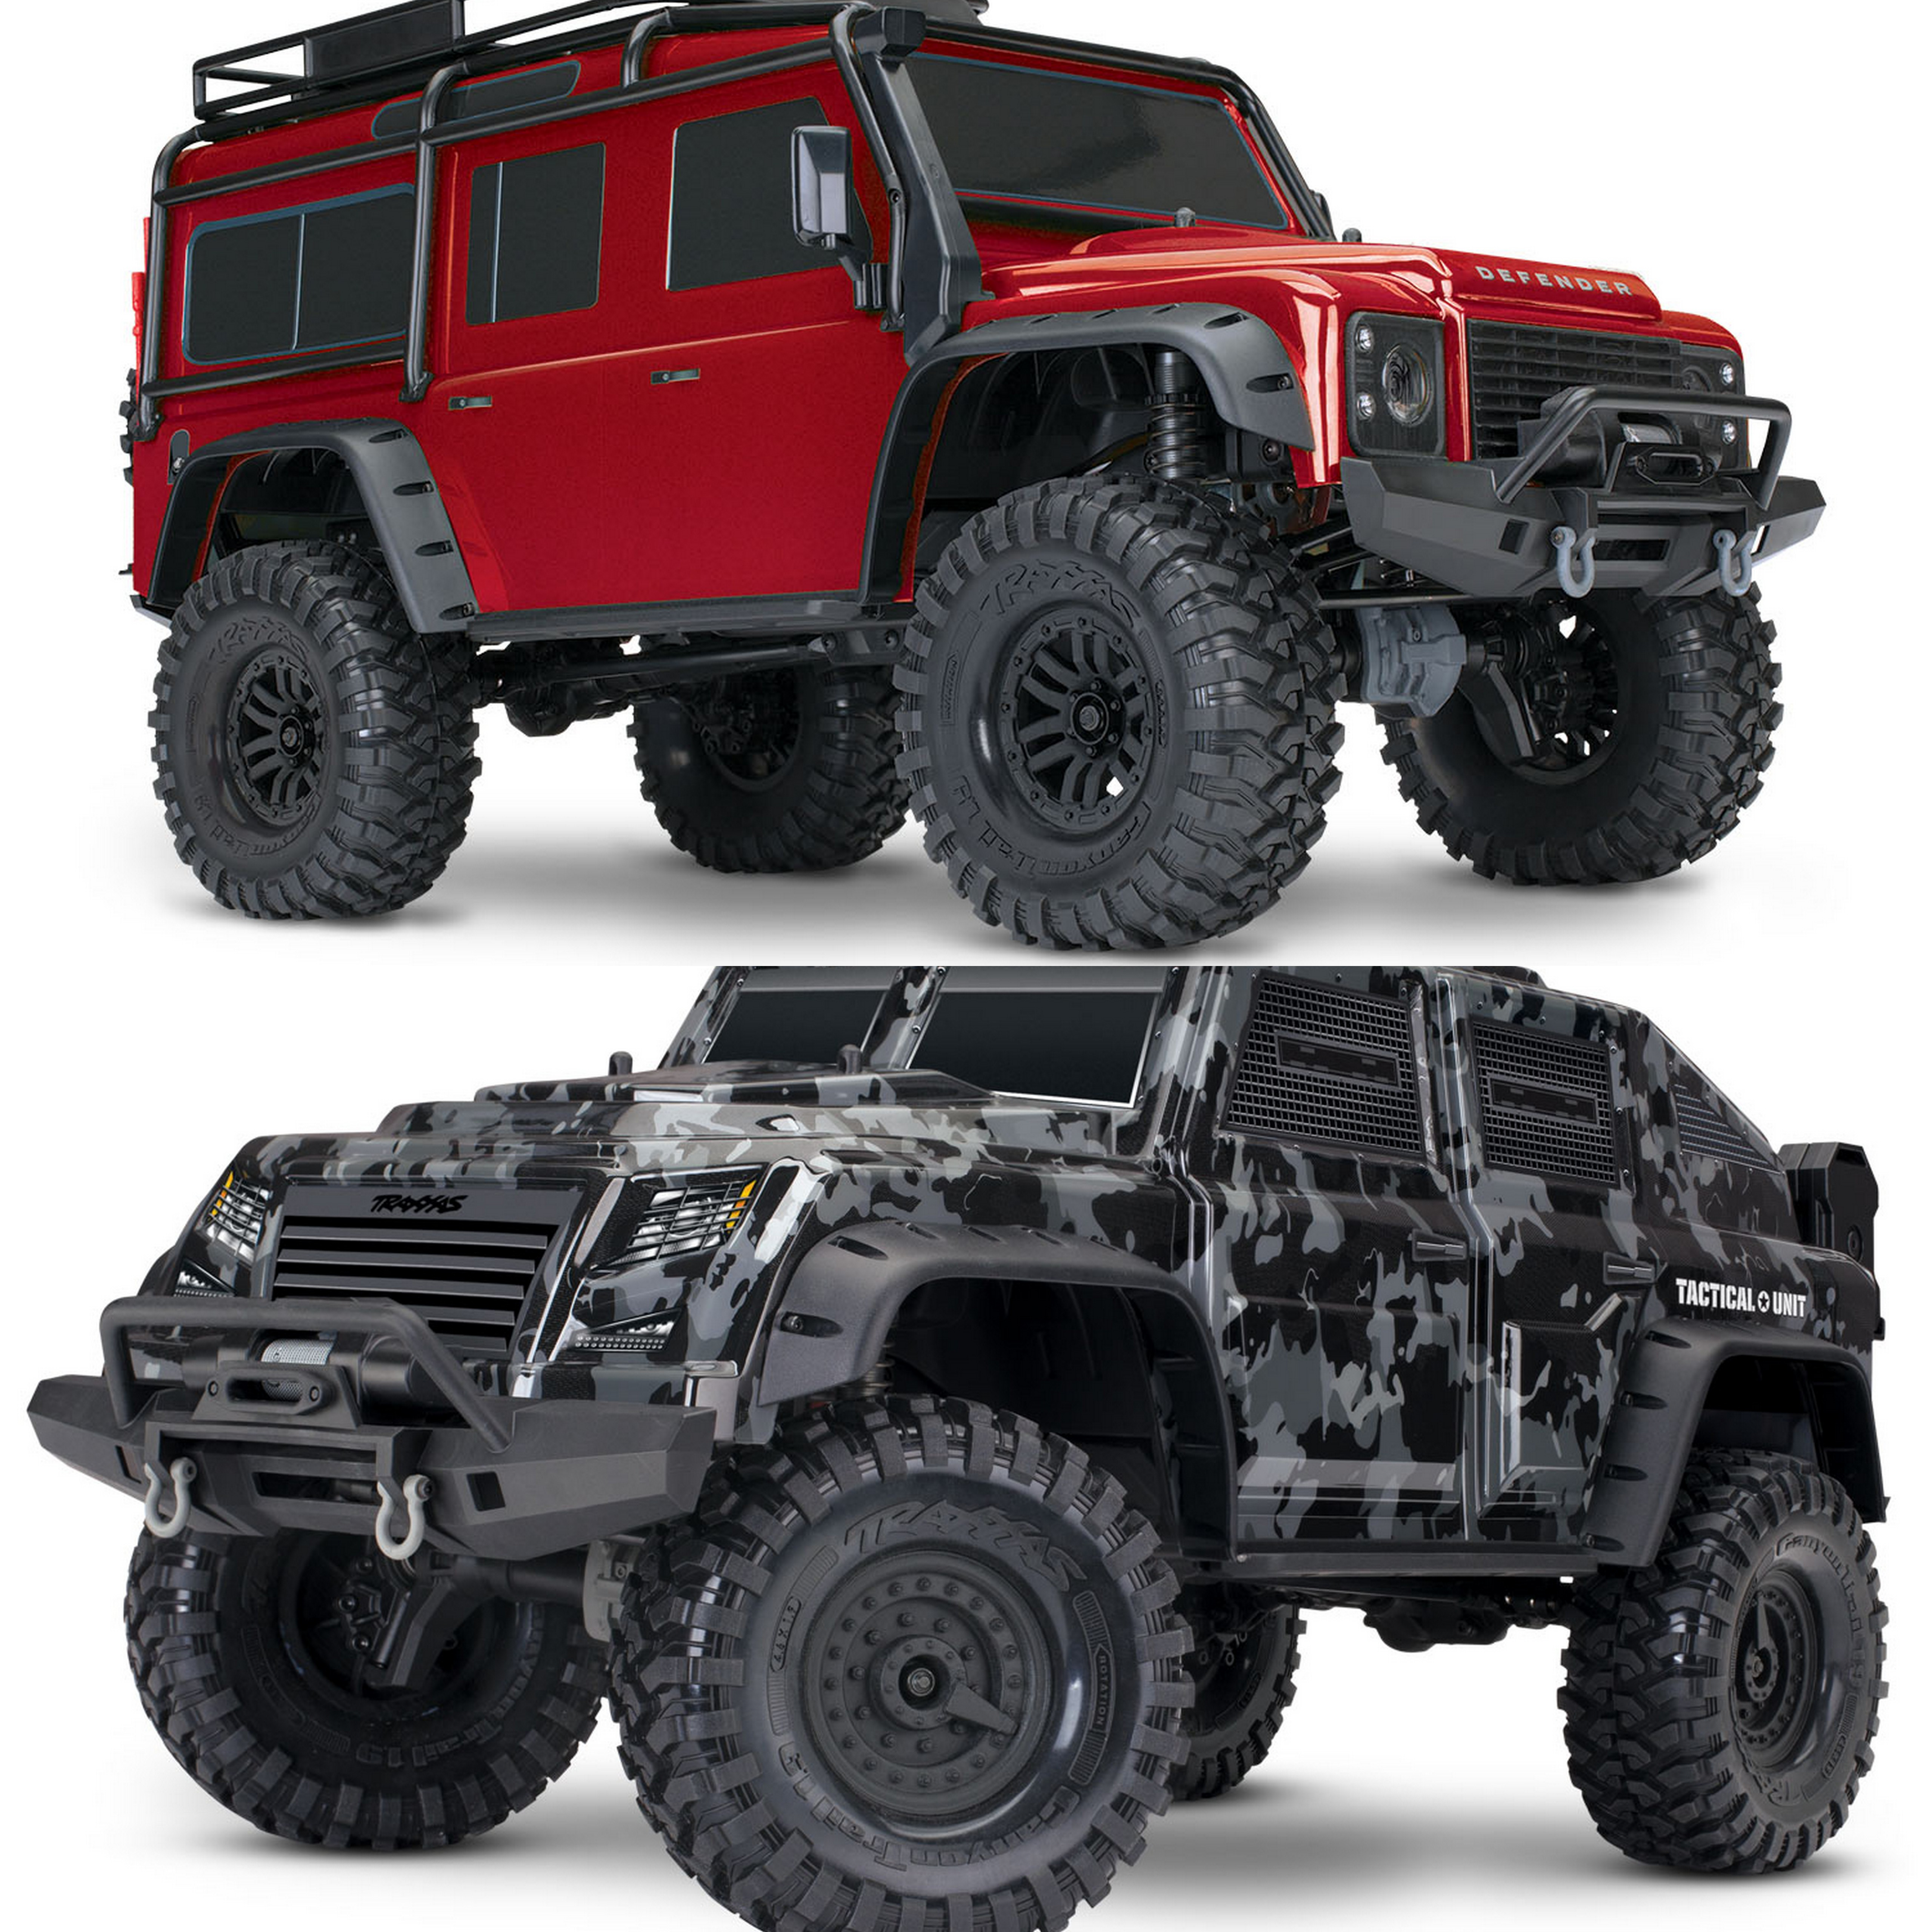 Traxxas 1/10 TRX-4 Land Rover Defender / Tactical